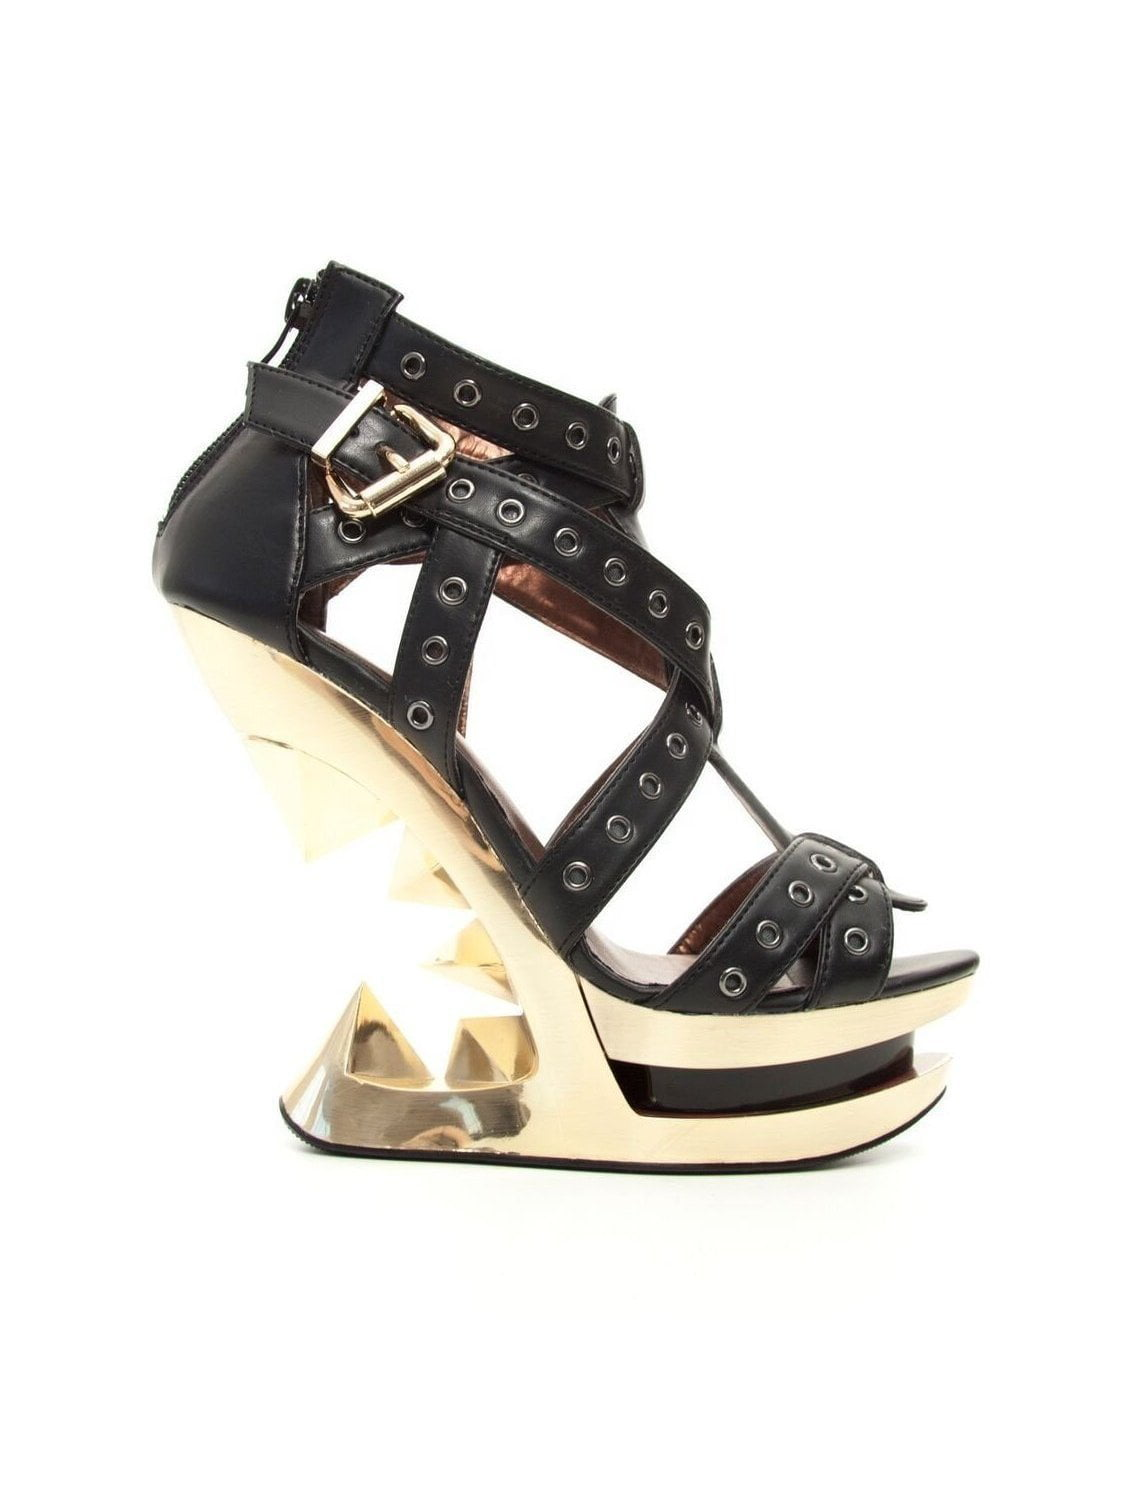 Hades Shoes H-Taunt Gold Wedge Heel 6 / Black